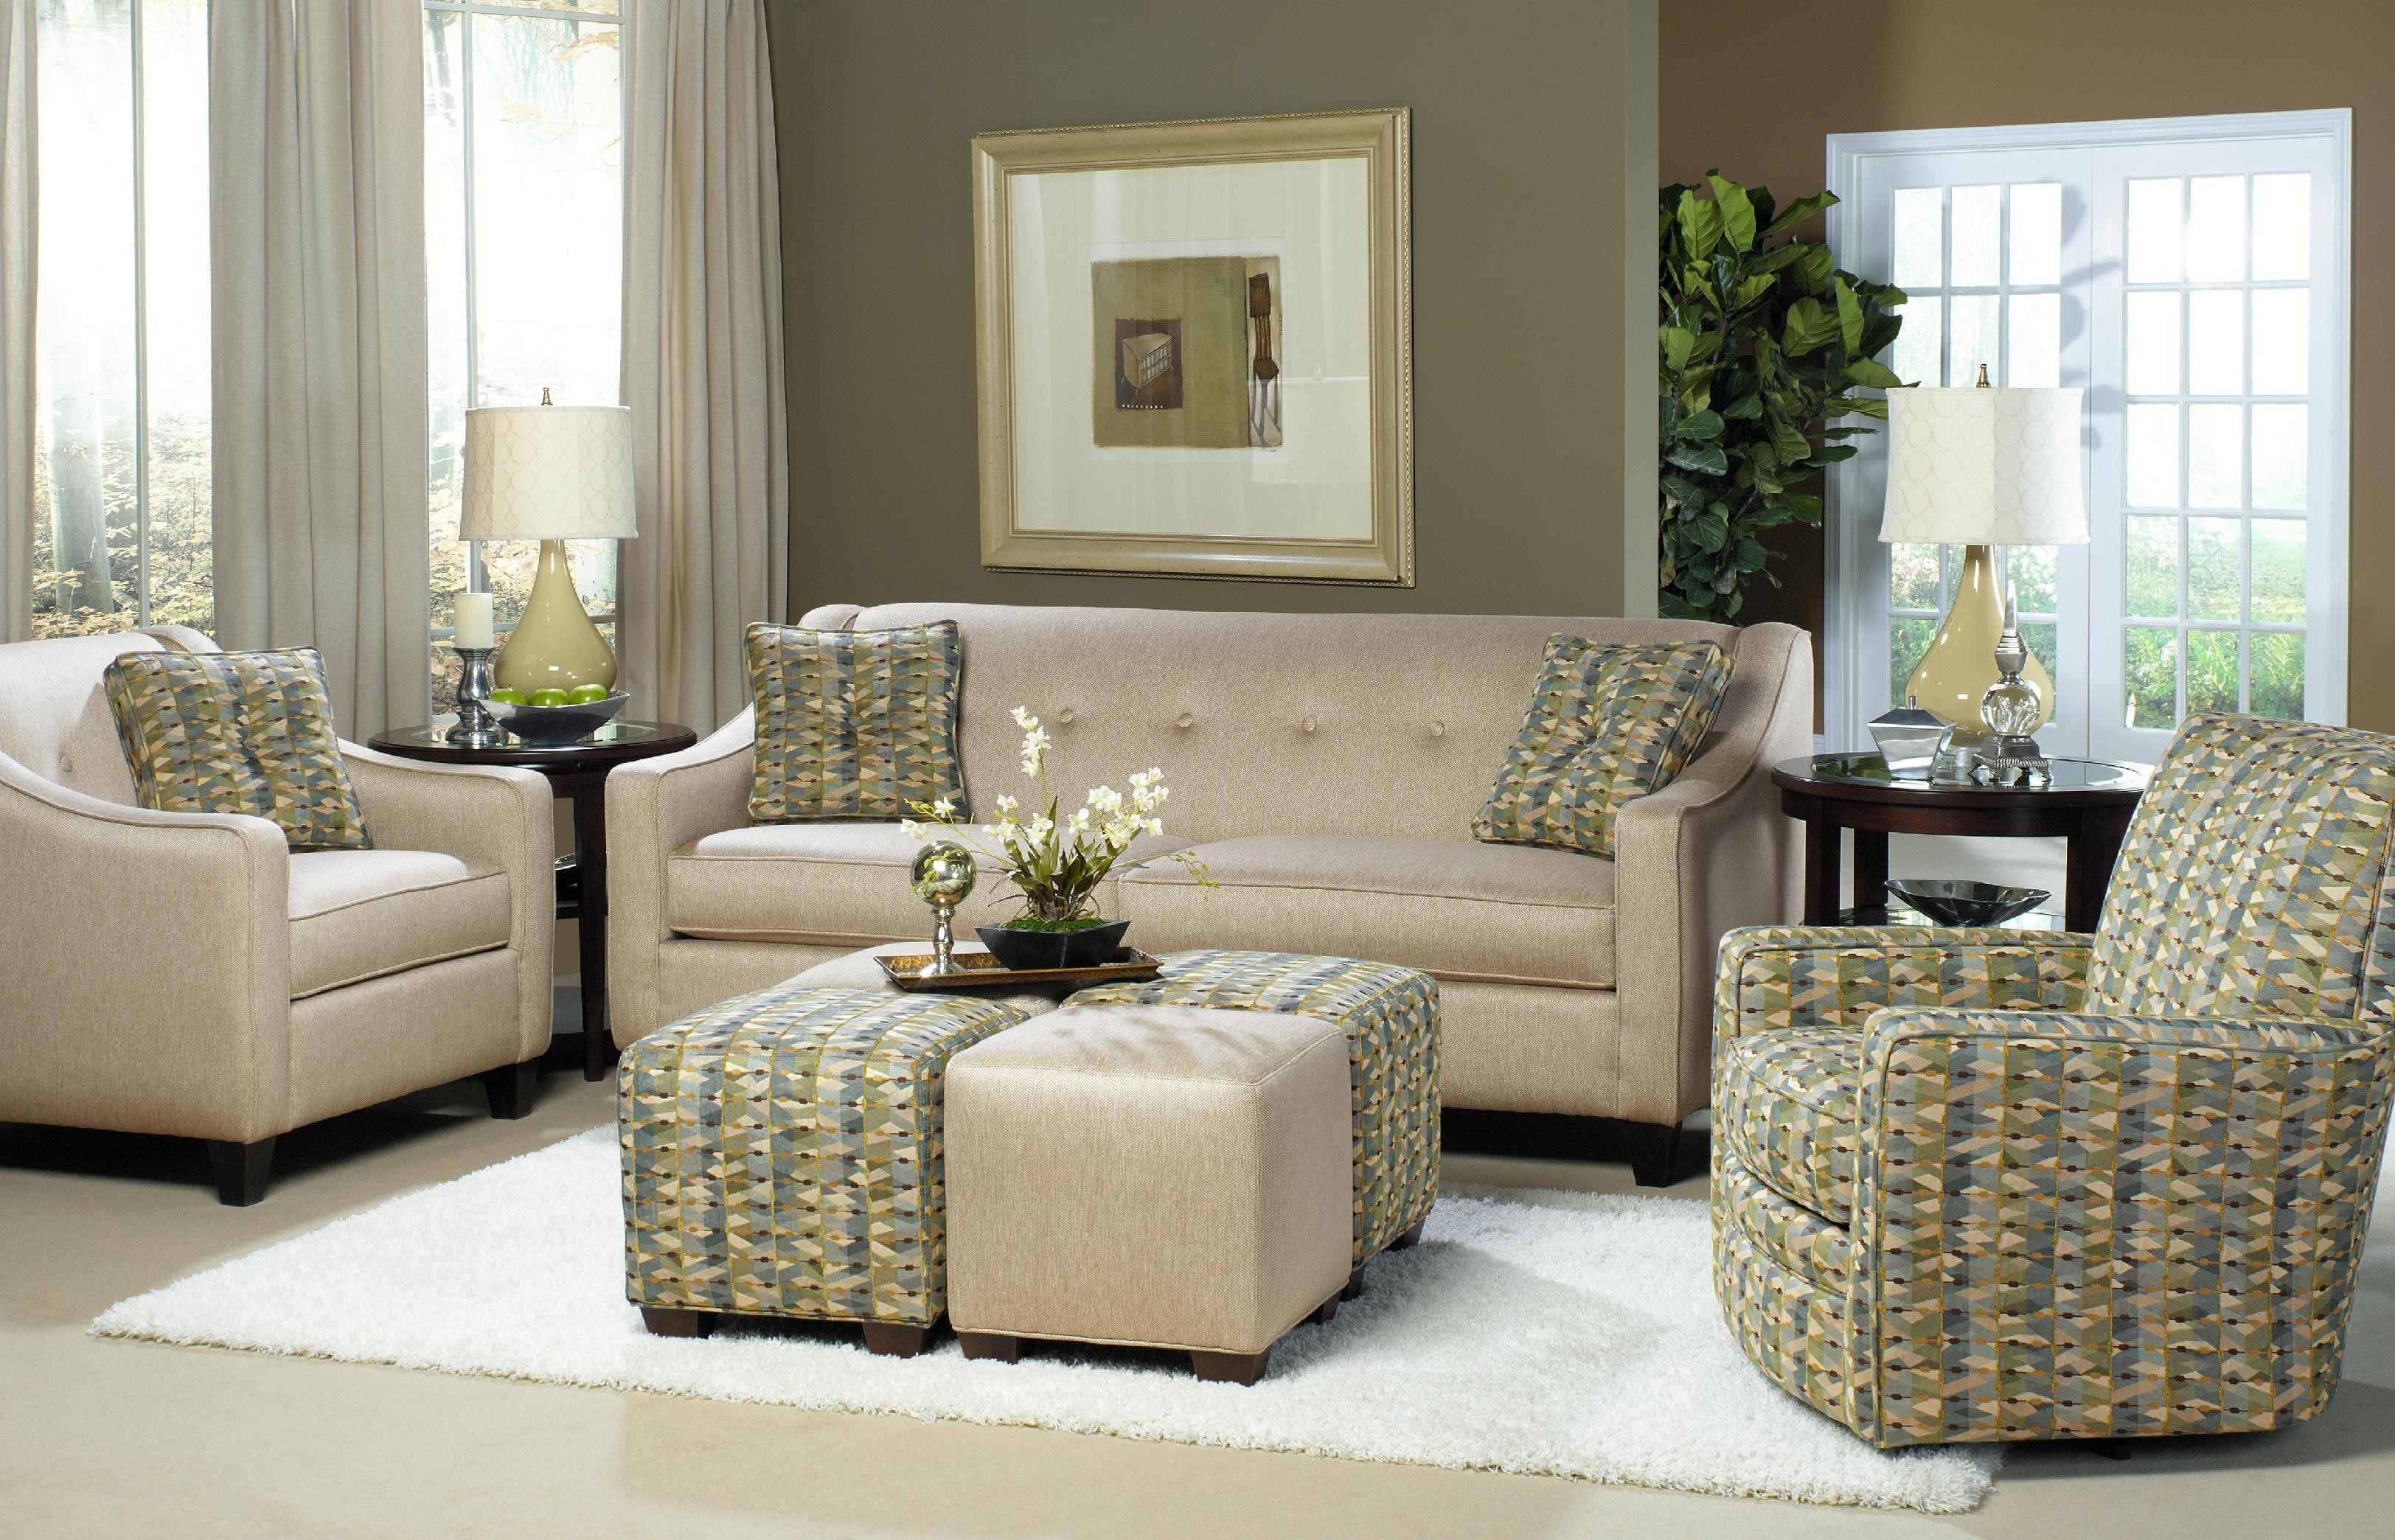 Sofa Set On Sale Amazing Living Room sofa Set Design Living Room sofa Sets for Sale House Picture